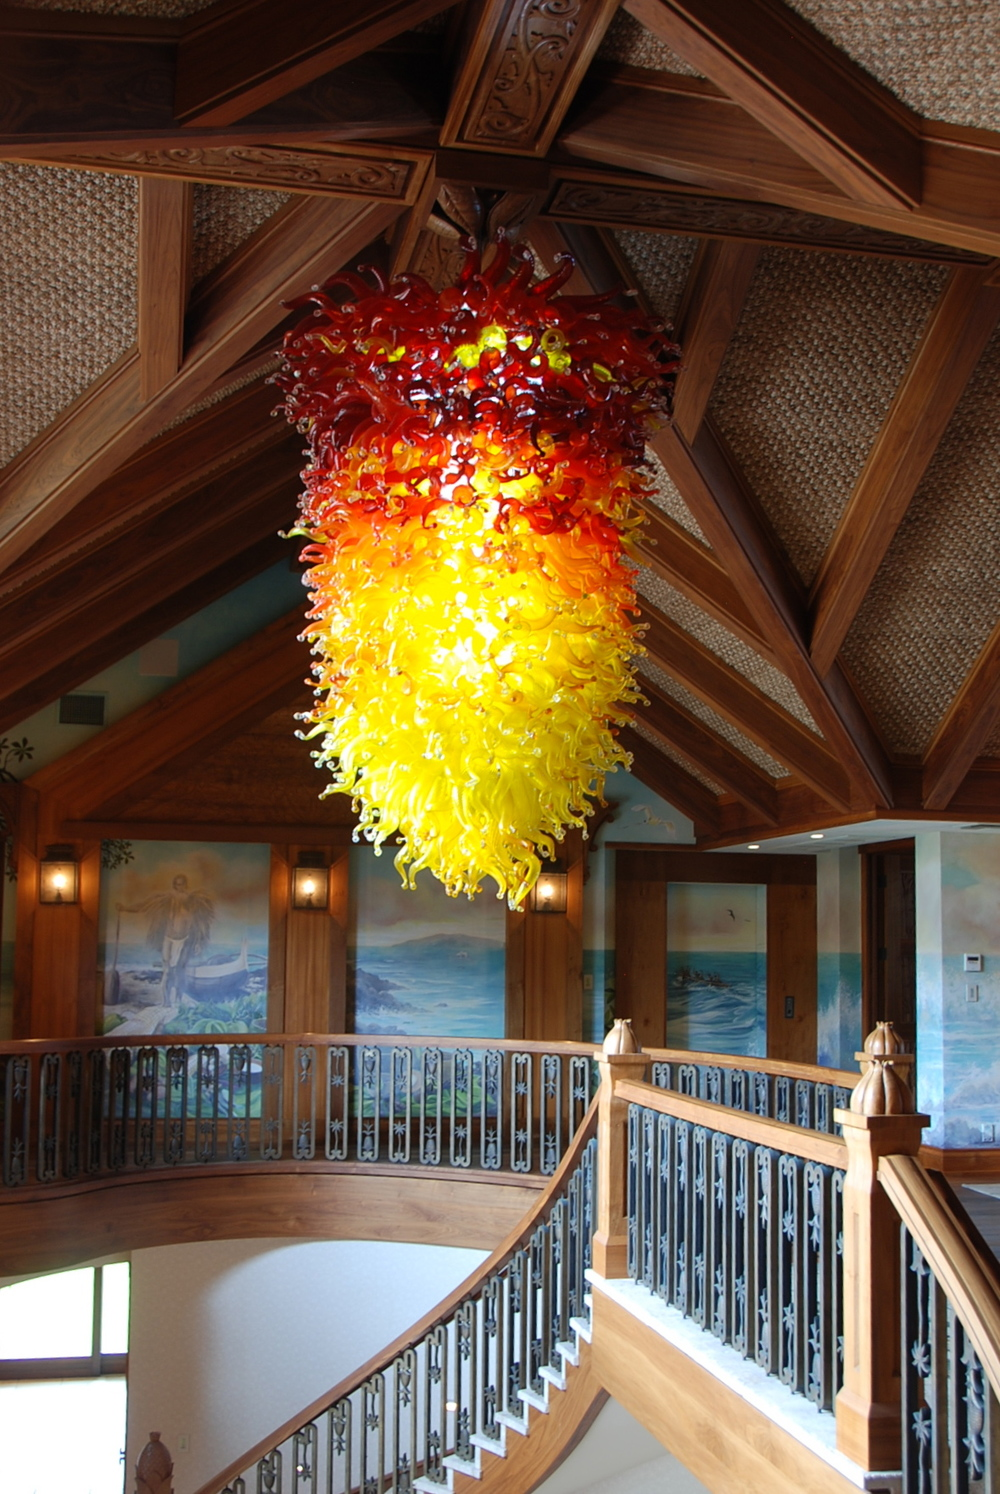 Pele Chandelier of over 1000 hand made pieces of glass and illuminated with LEDs.   by artist         Rick Strini withStrini Art Glass